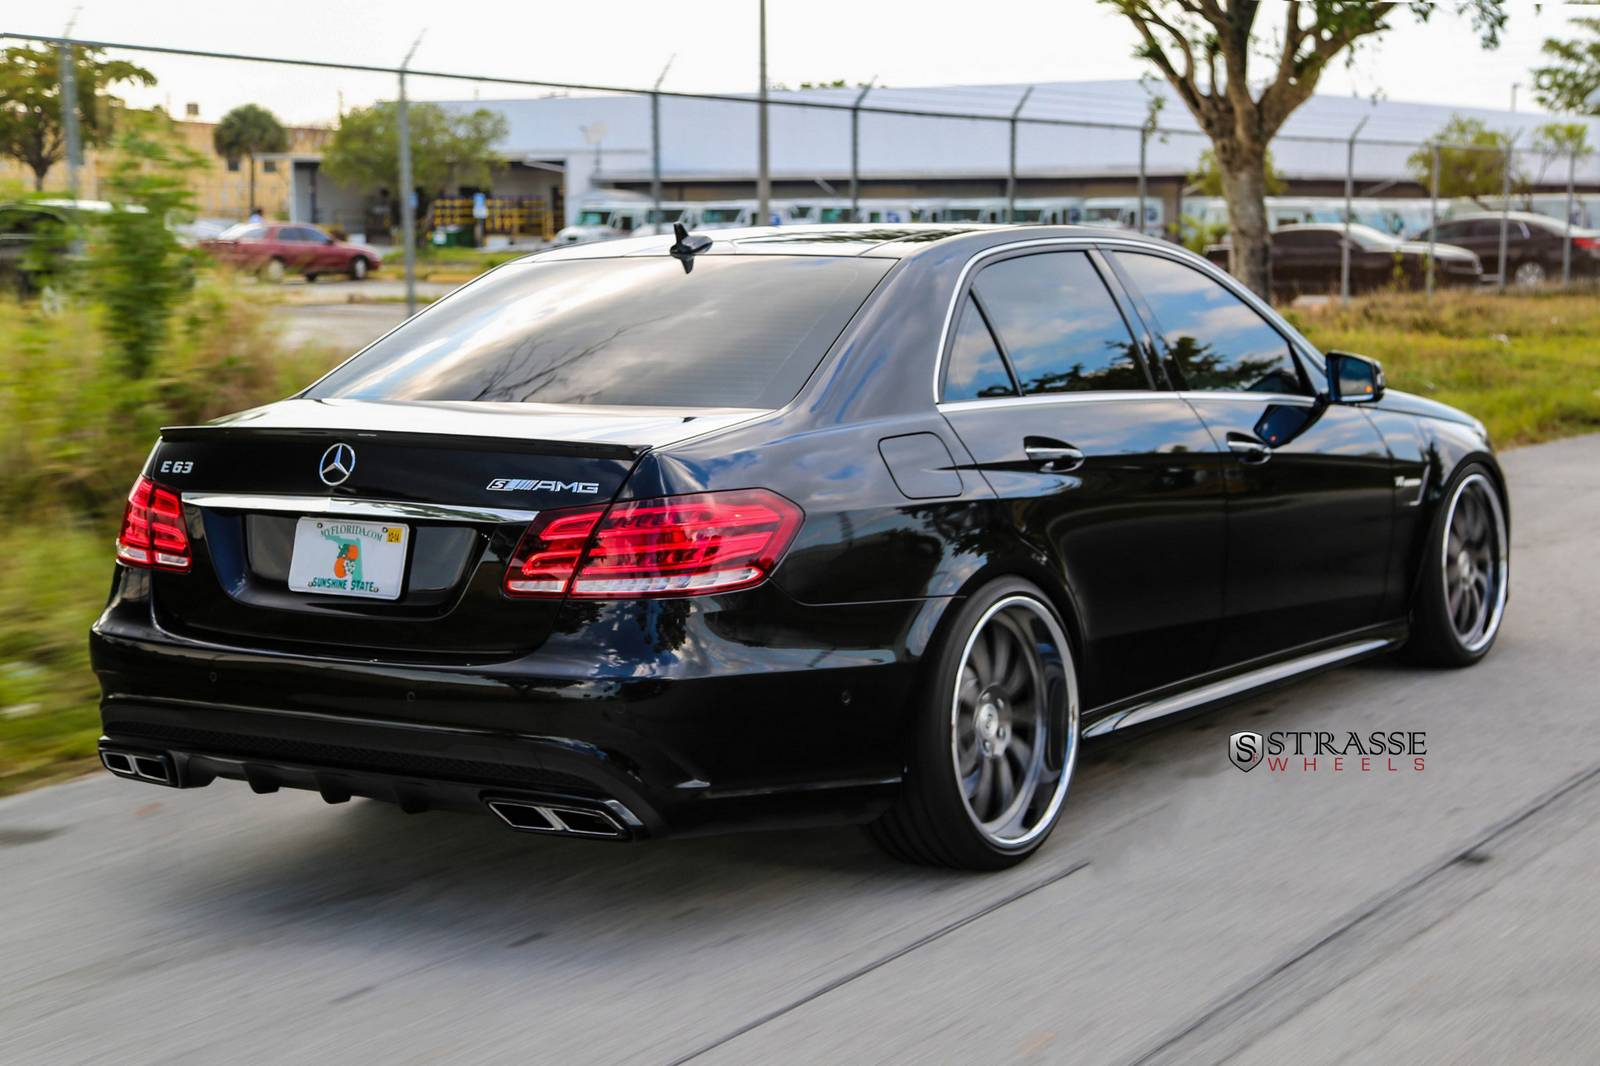 2014 mercedes benz e63 amg s by titanio automotive gtspirit for Mercedes benz e class e63 amg